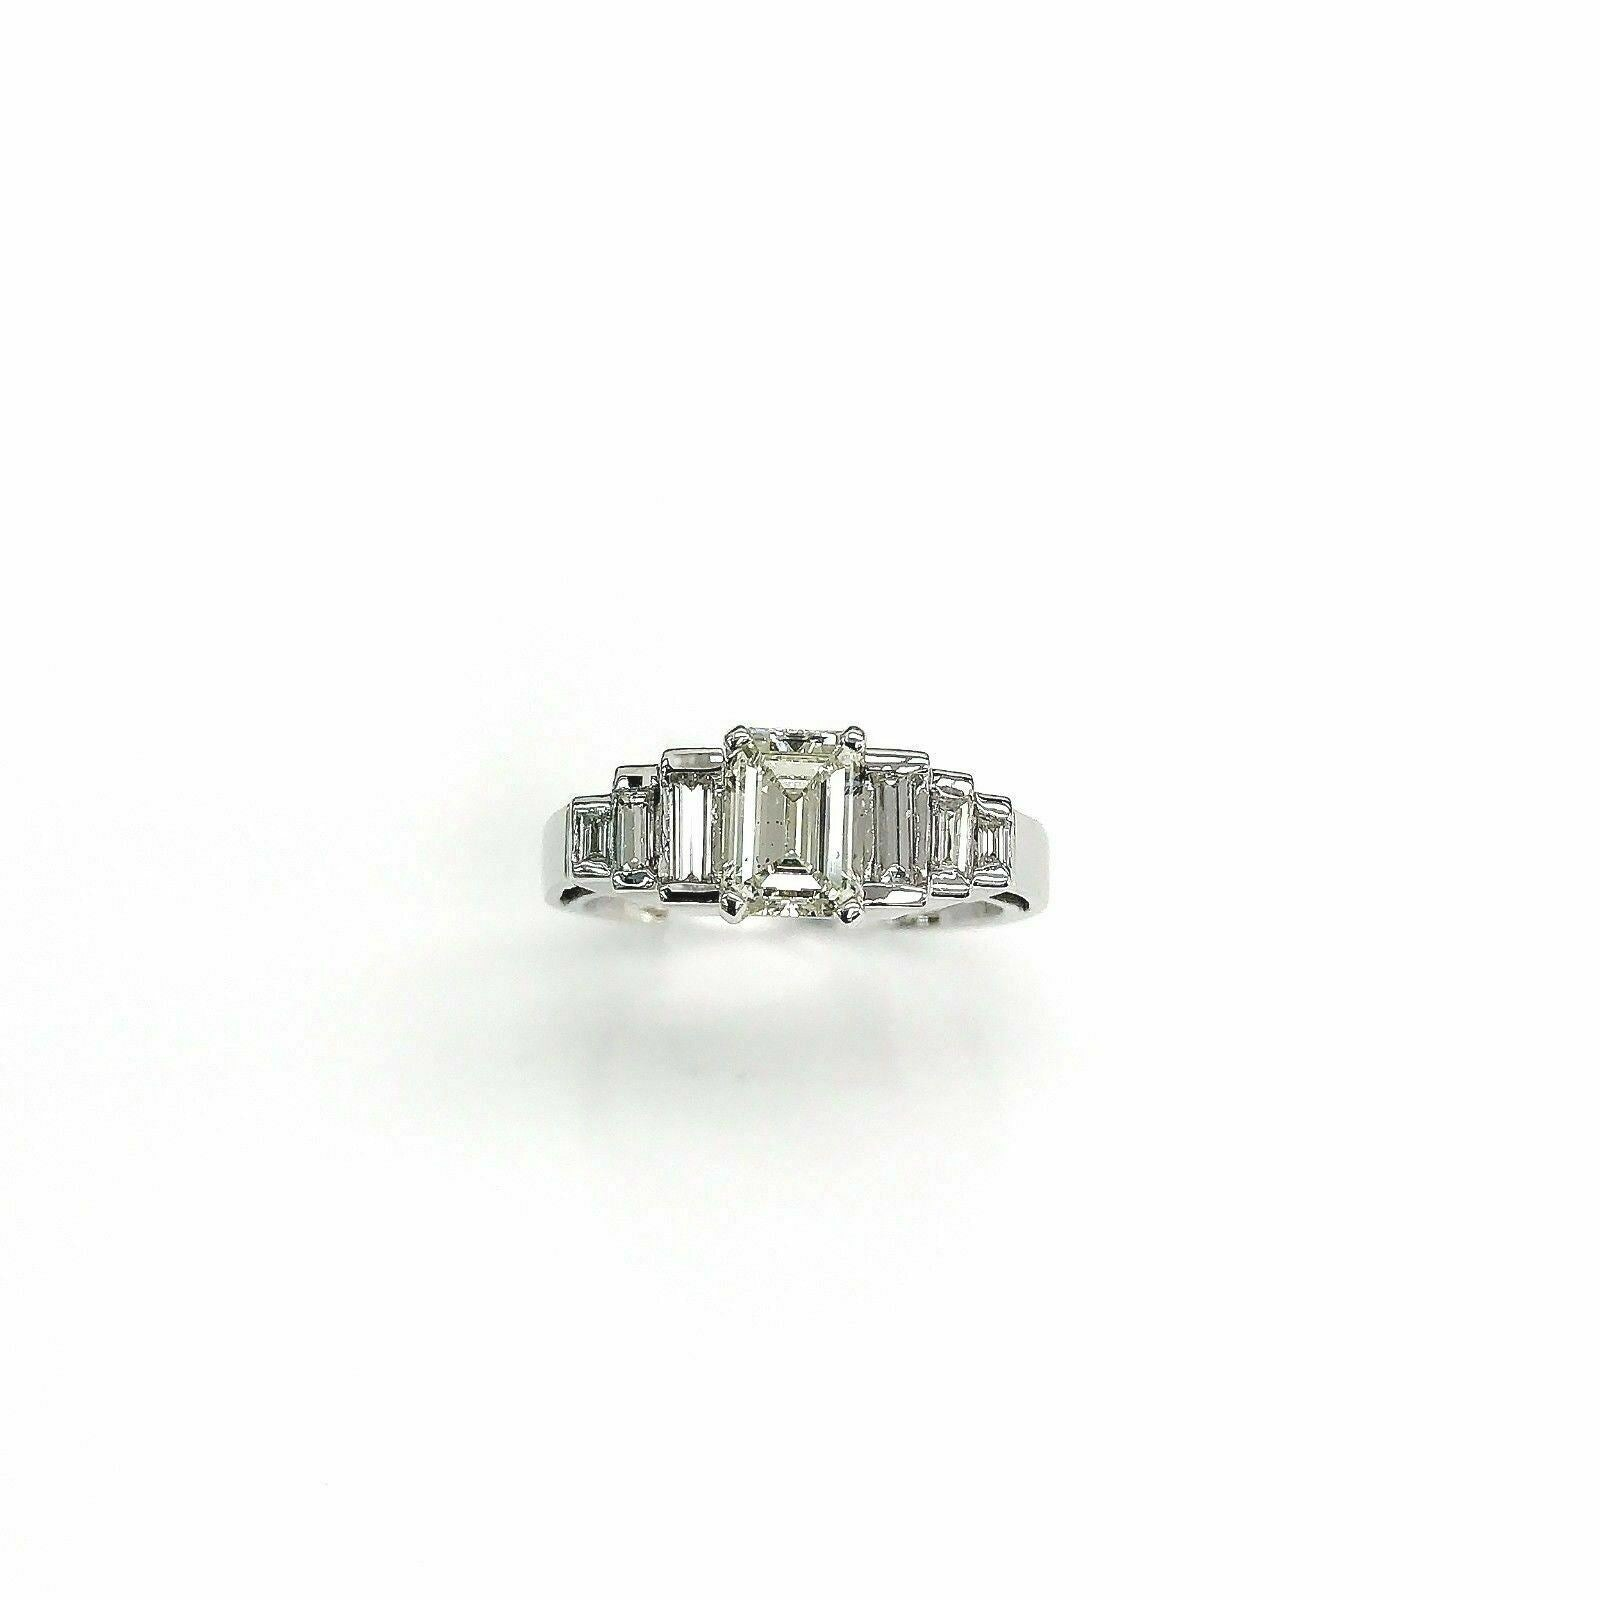 1.53 Carats Diamond Wedding Anniversary Ring 1.03 Emerald Cut Center 14K Gold